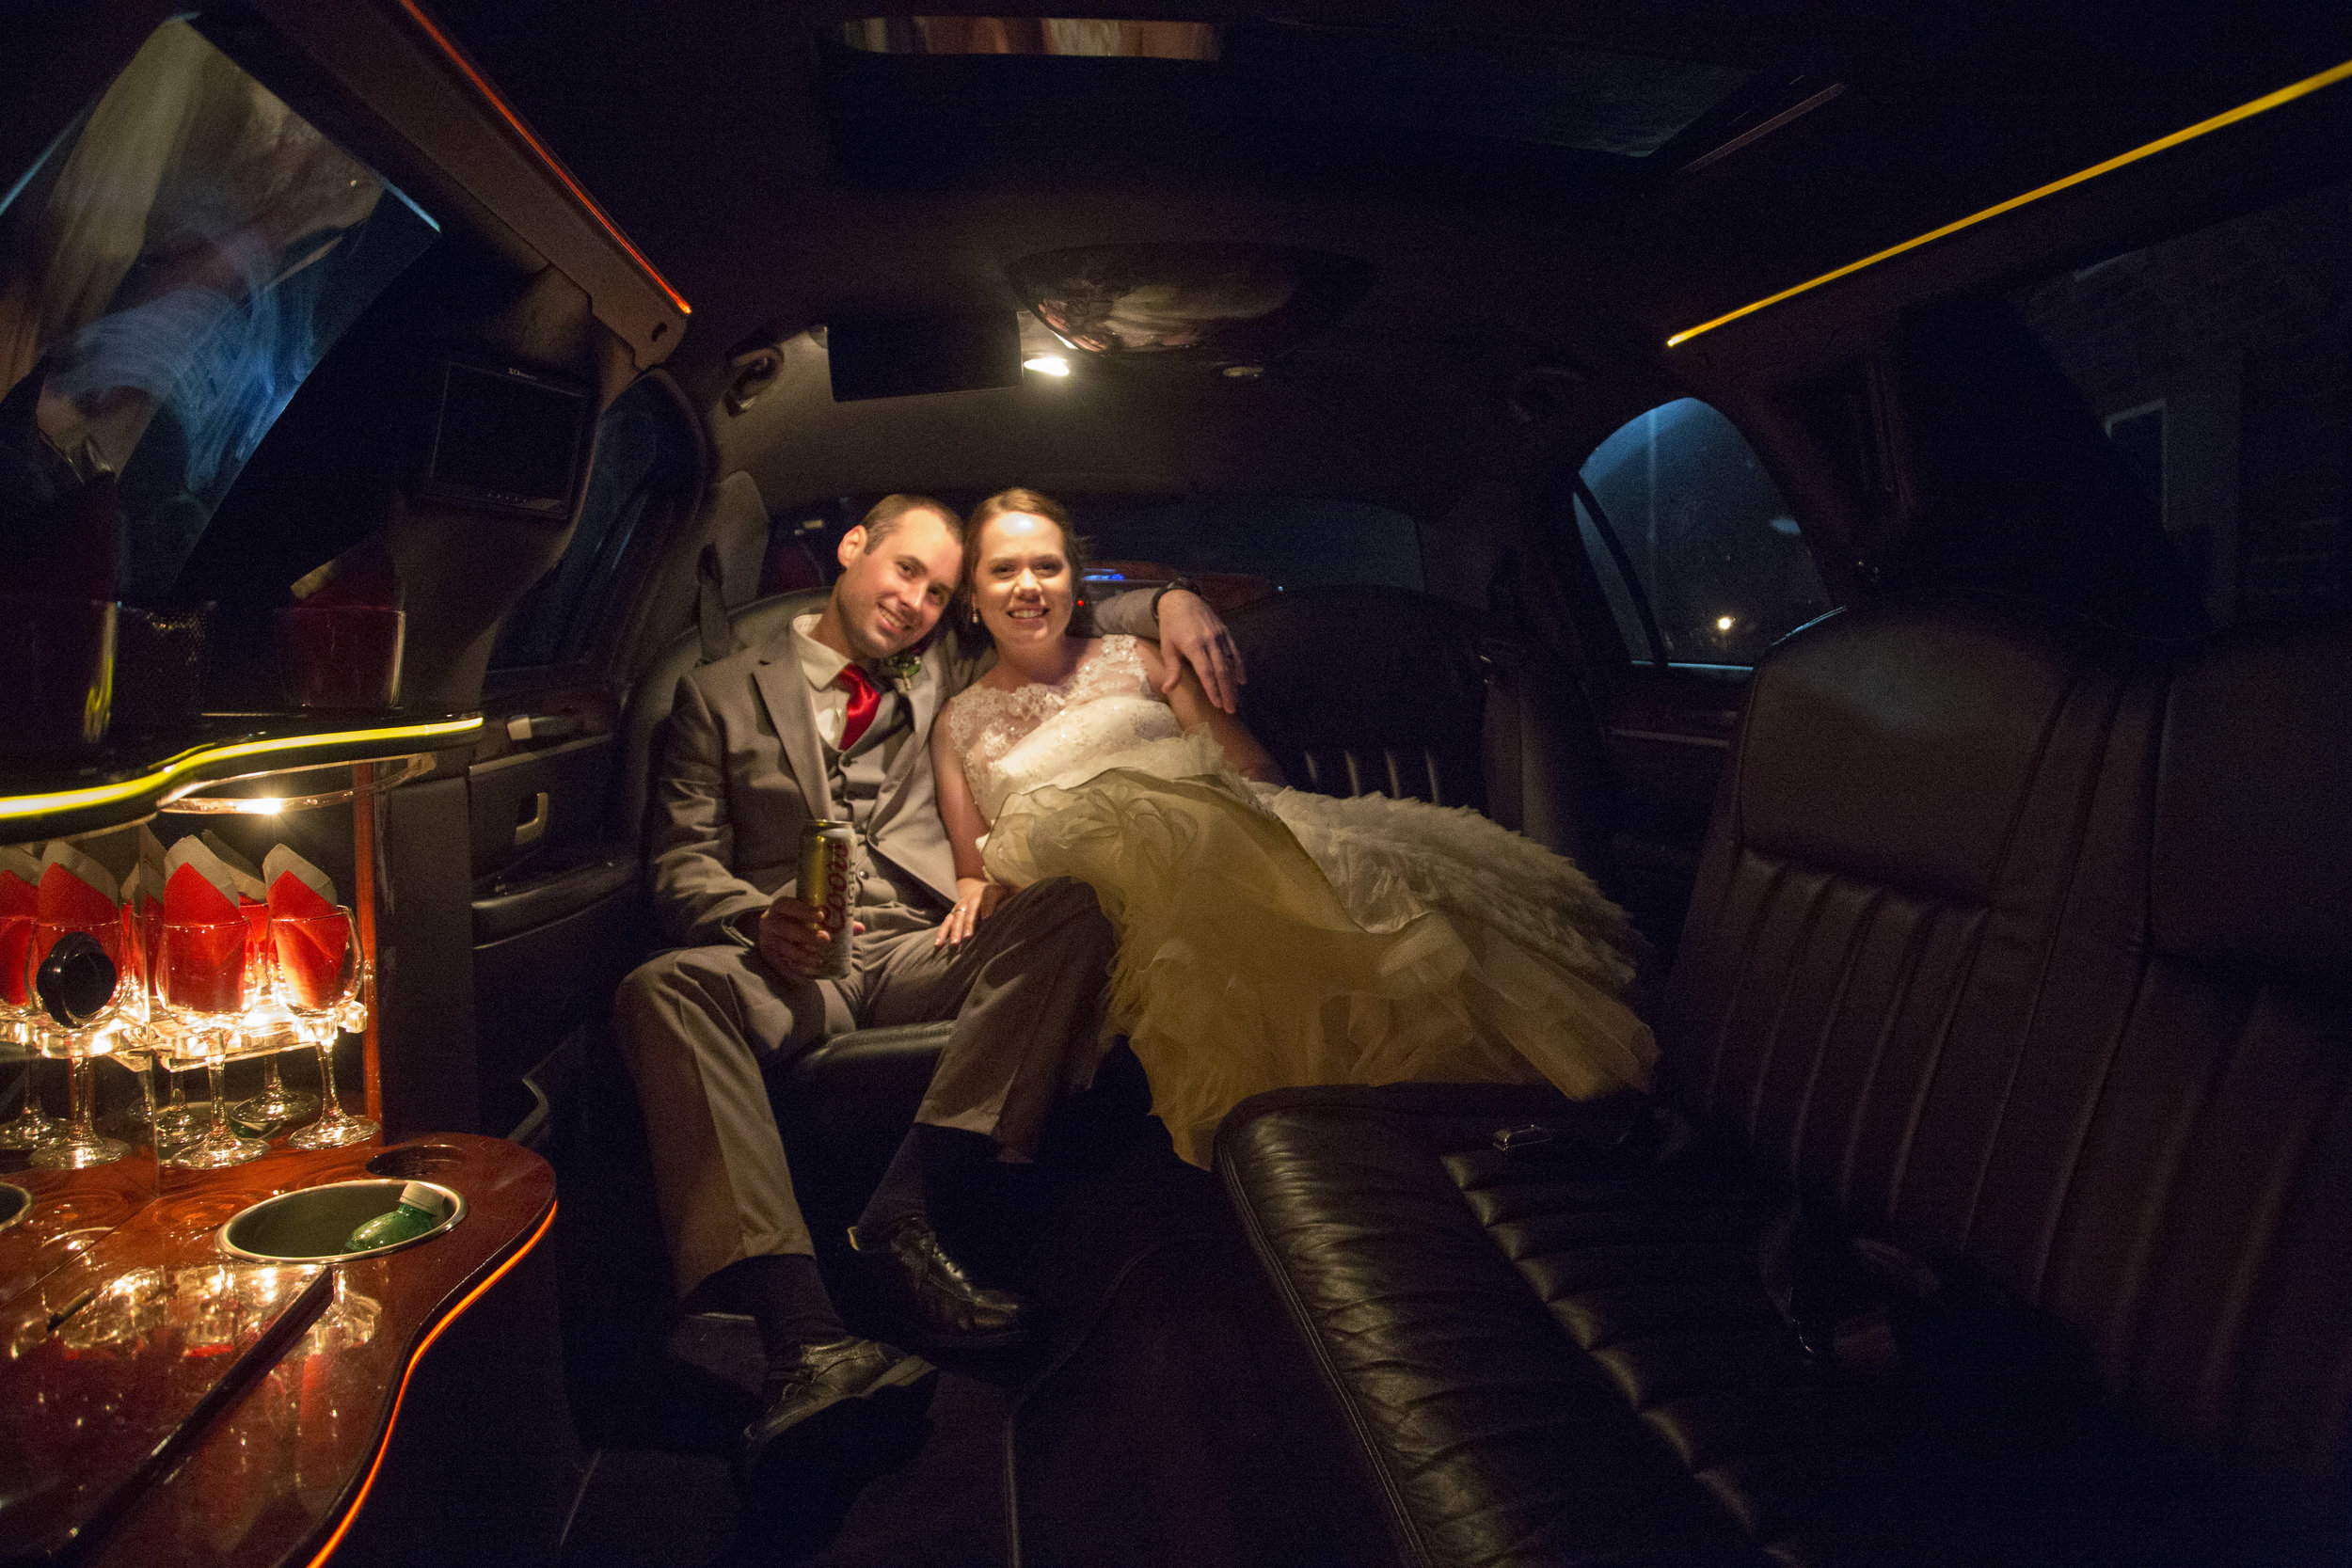 15 Inside limo with bride and groom.jpg